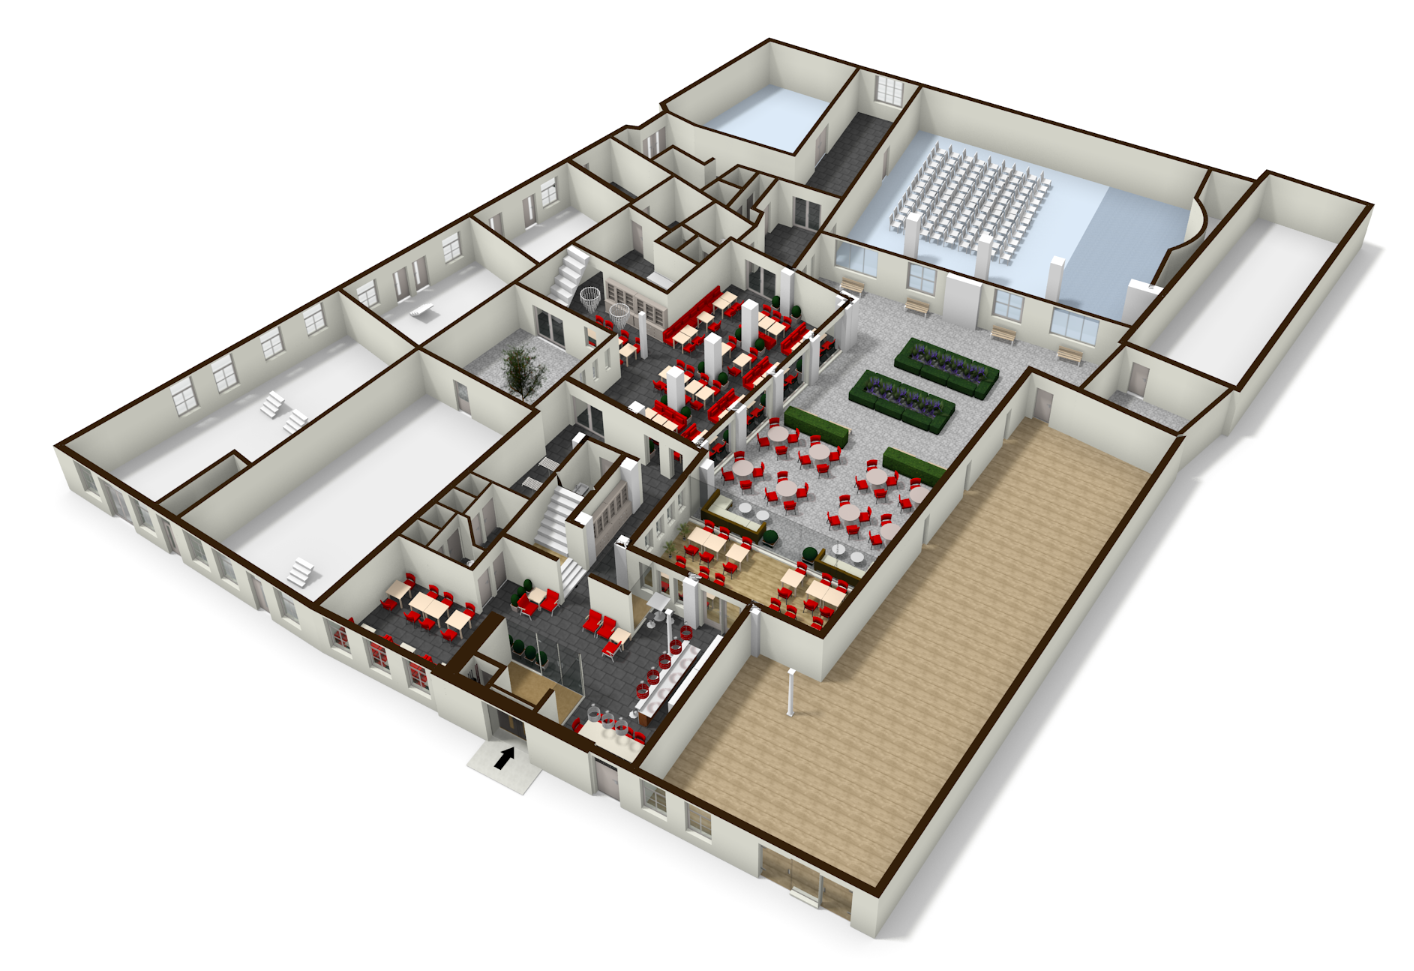 Well Drawn Plan Of A Funeral Home Interior Architecture Floor